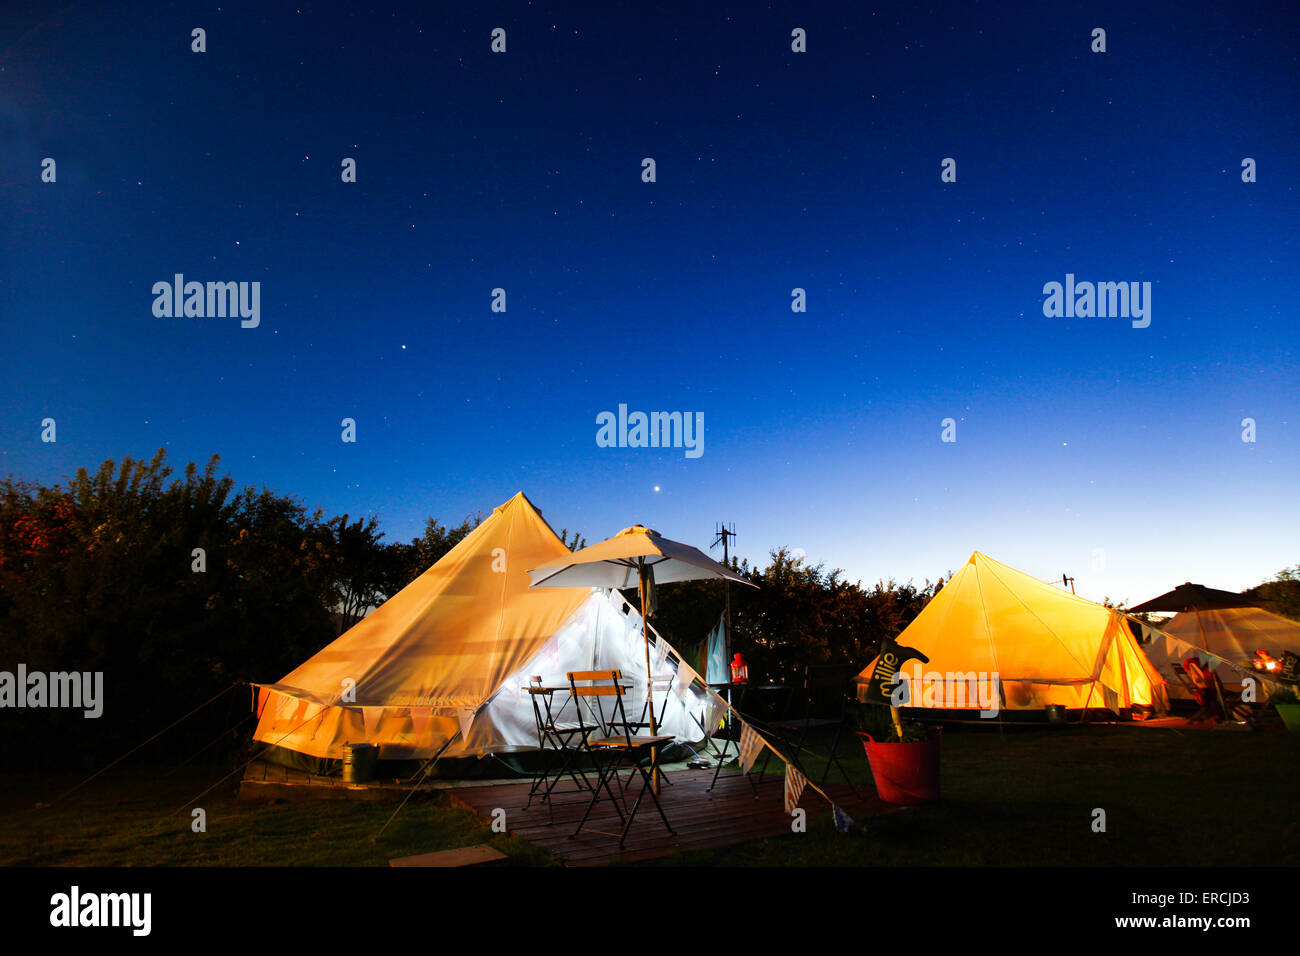 Glamping camping under the stars in a traditional Bell tent in Bembridge on the Isle of Wight - Stock Image